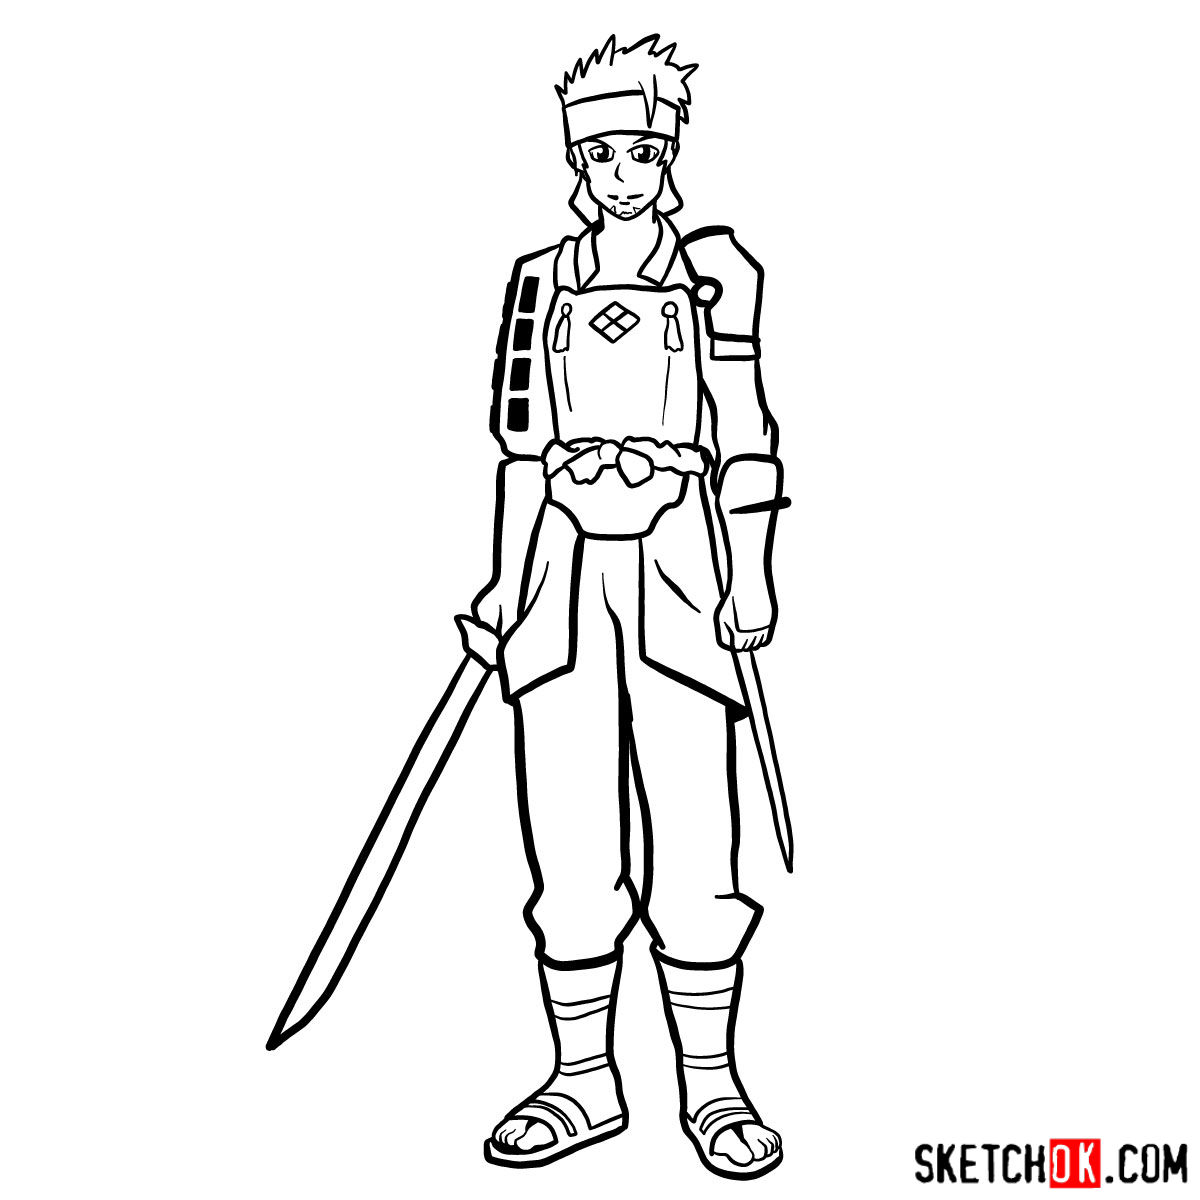 How to draw Klein from Sword Art Online - step 15